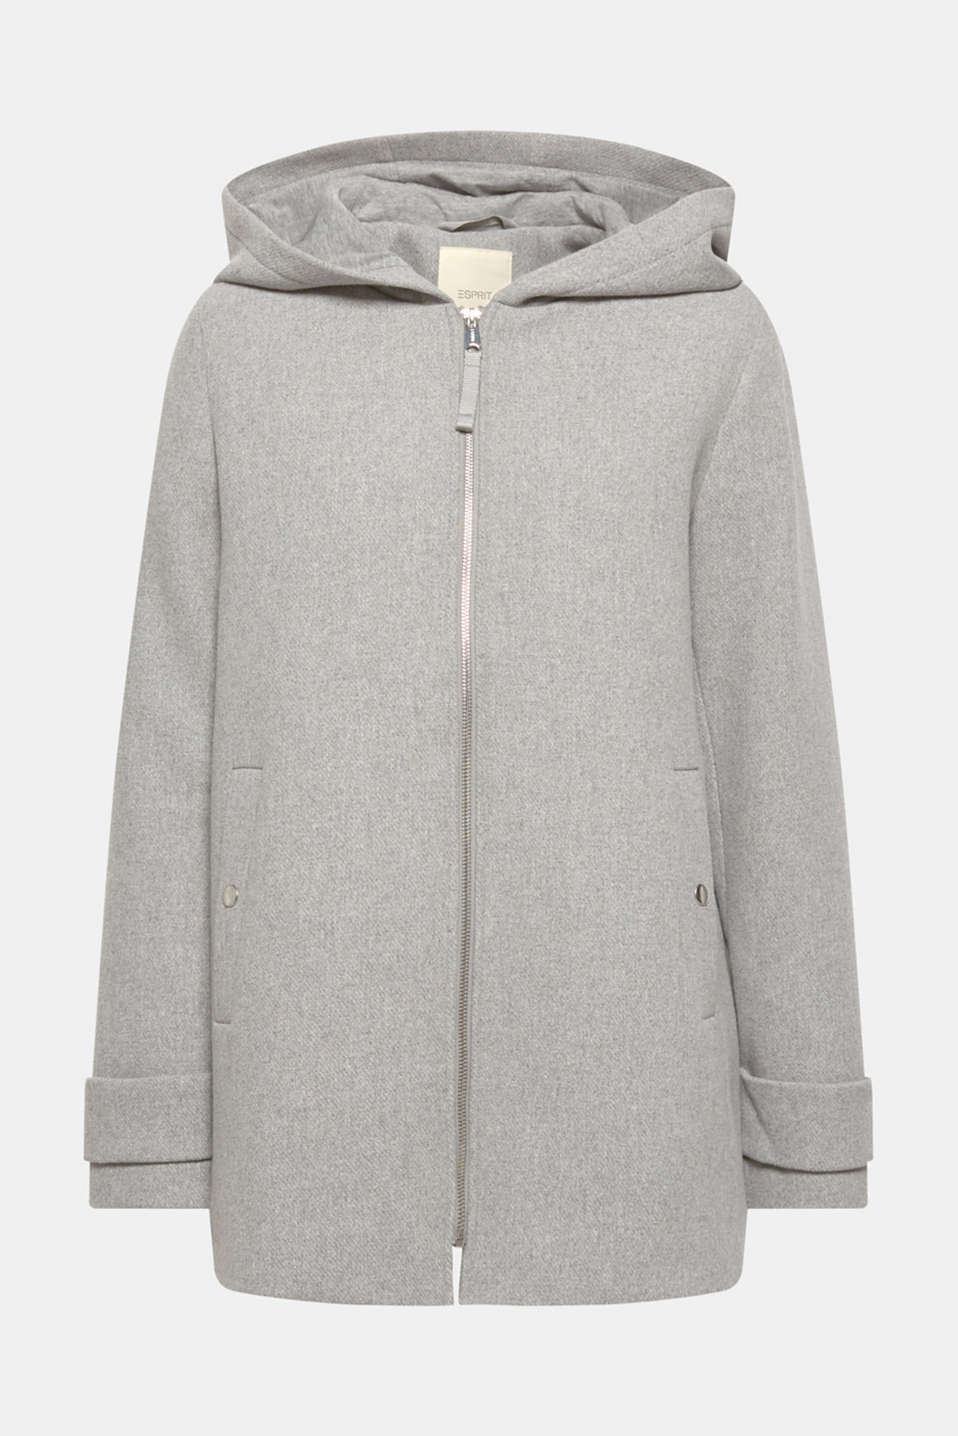 Jackets outdoor woven, LIGHT GREY 5, detail image number 7